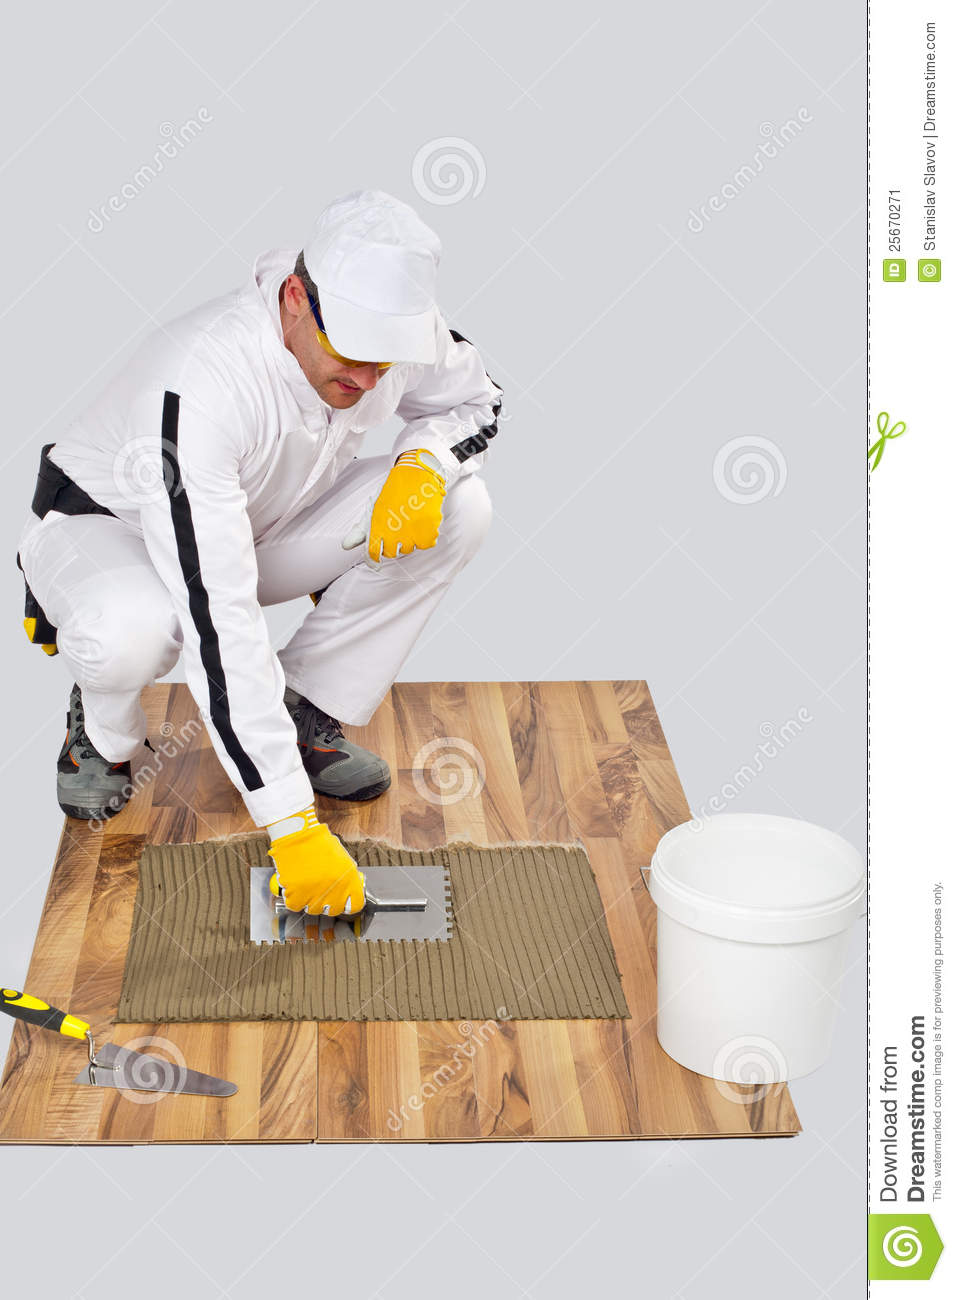 Worker diy tile adhesive trowel wooden floor stock image image worker diy tile adhesive trowel wooden floor dailygadgetfo Gallery